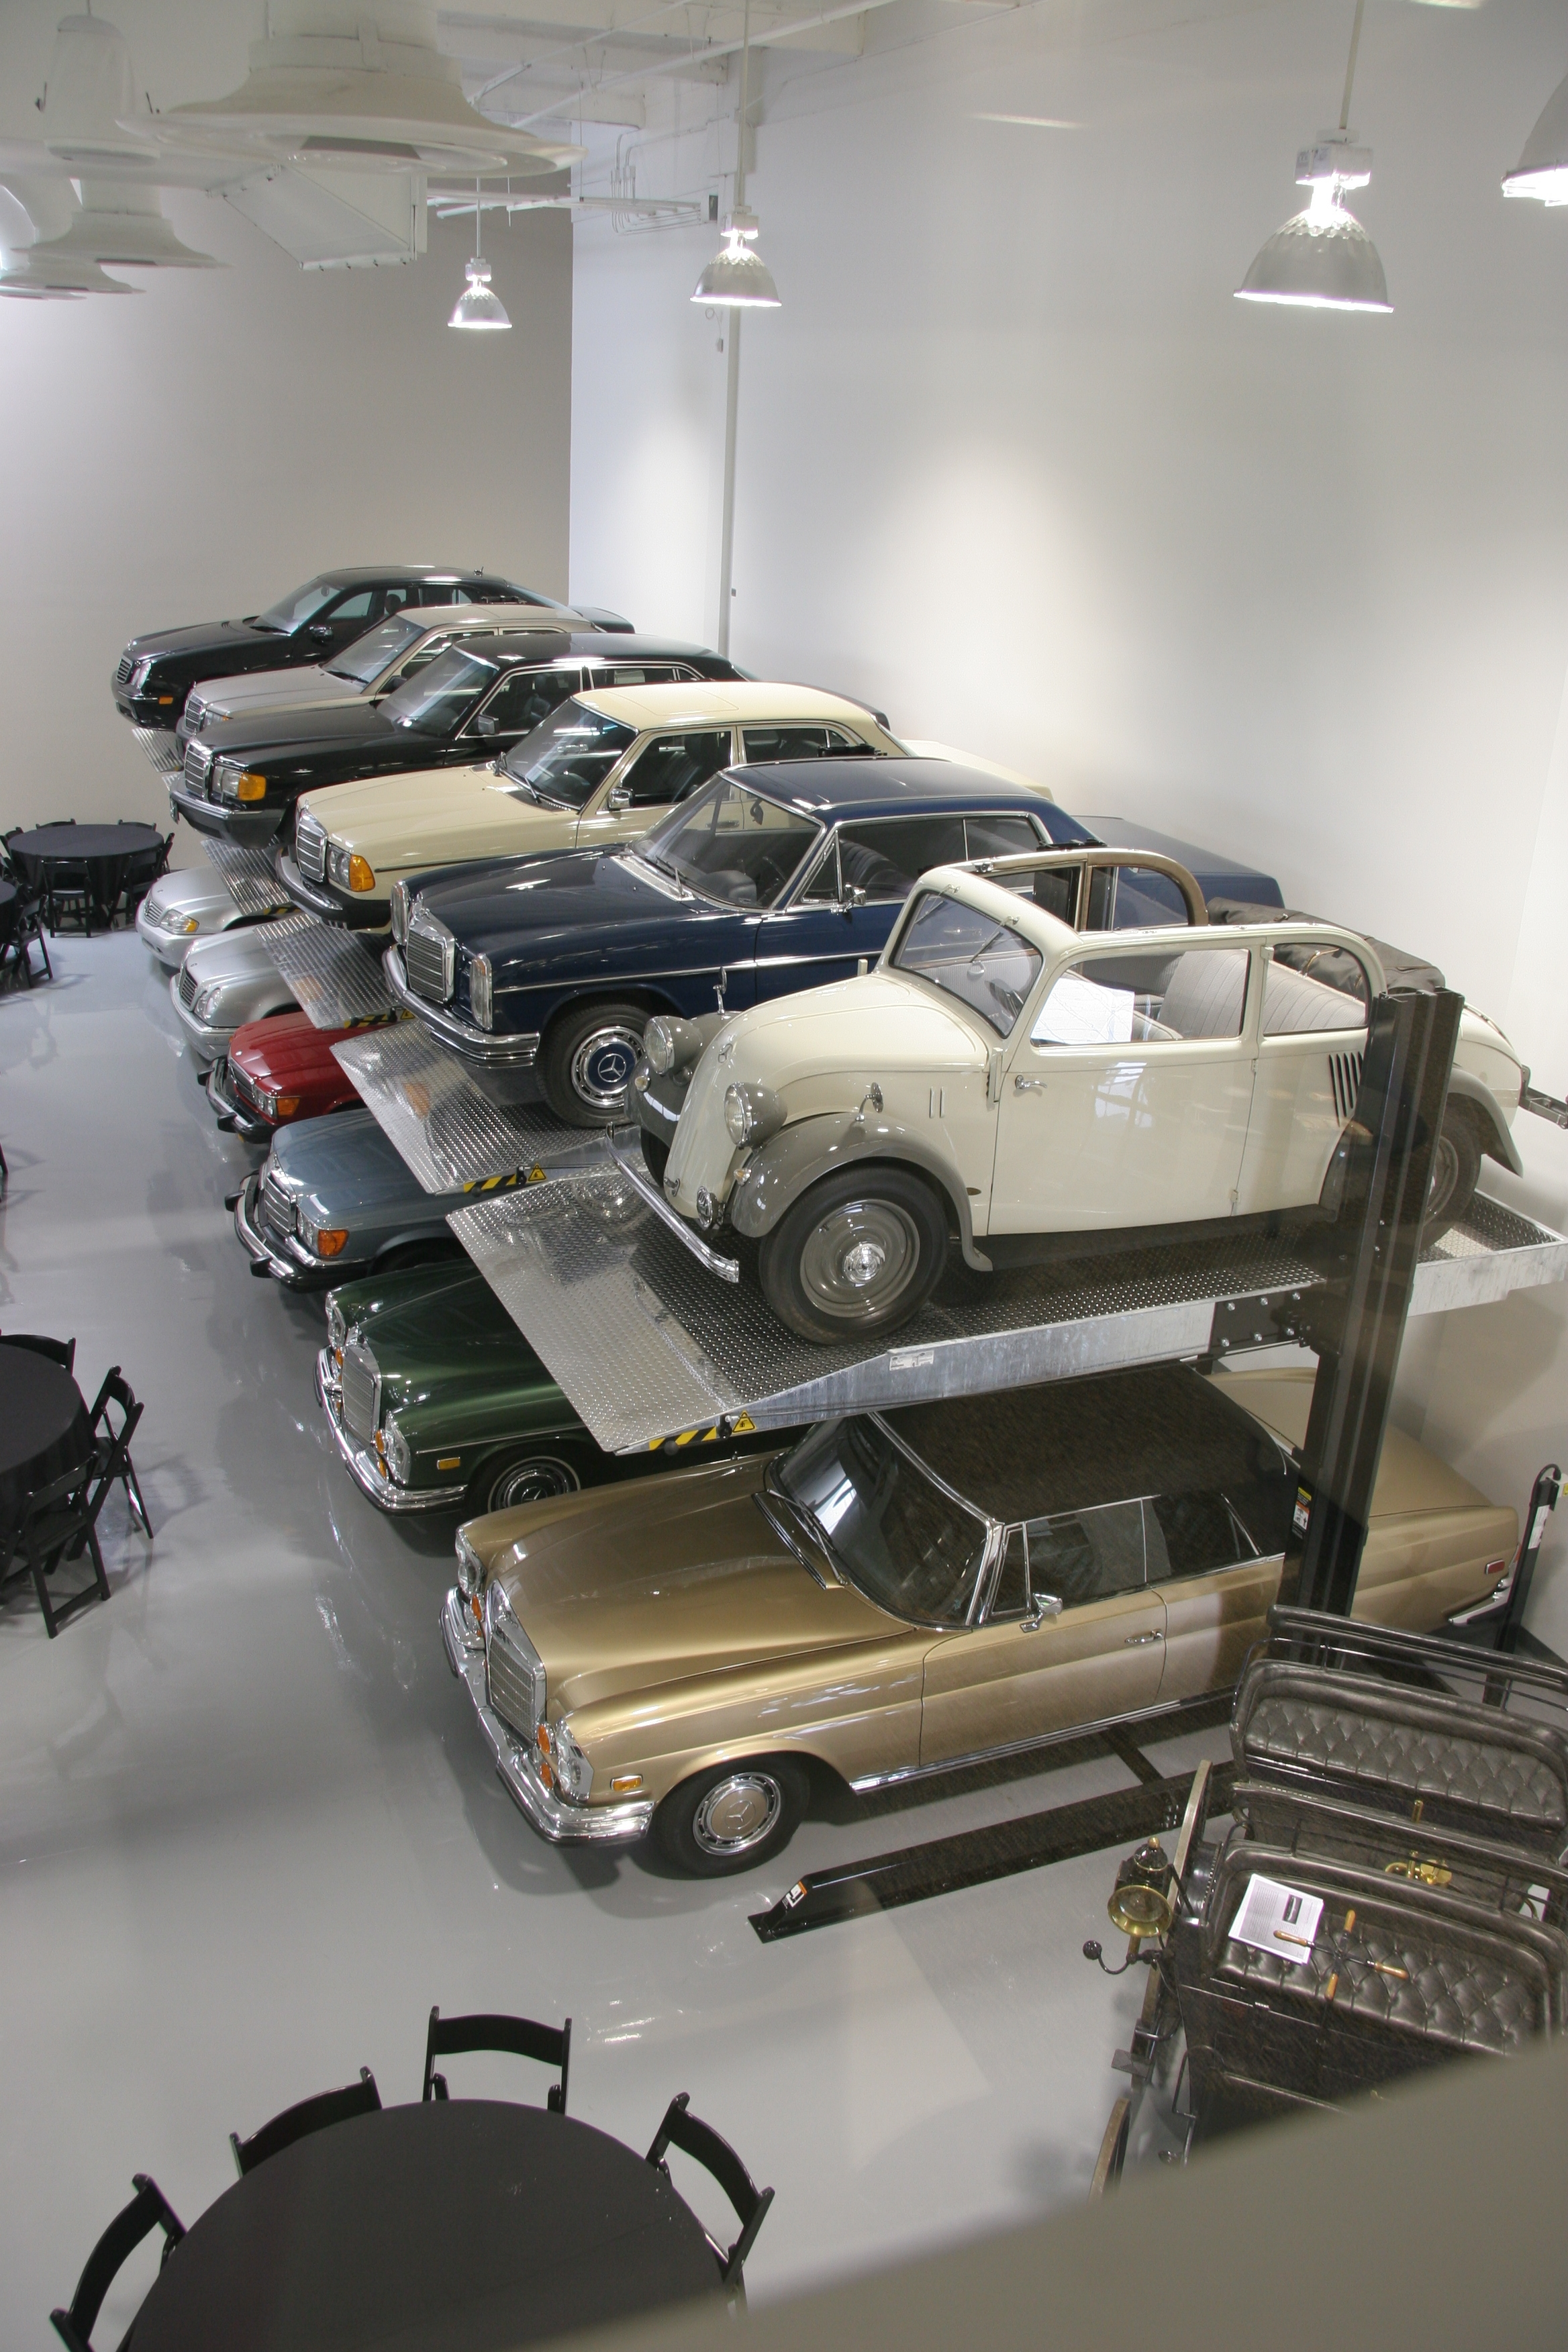 Cool car places mercedes benz classic center irvine ca for Mercedes benz classic center germany